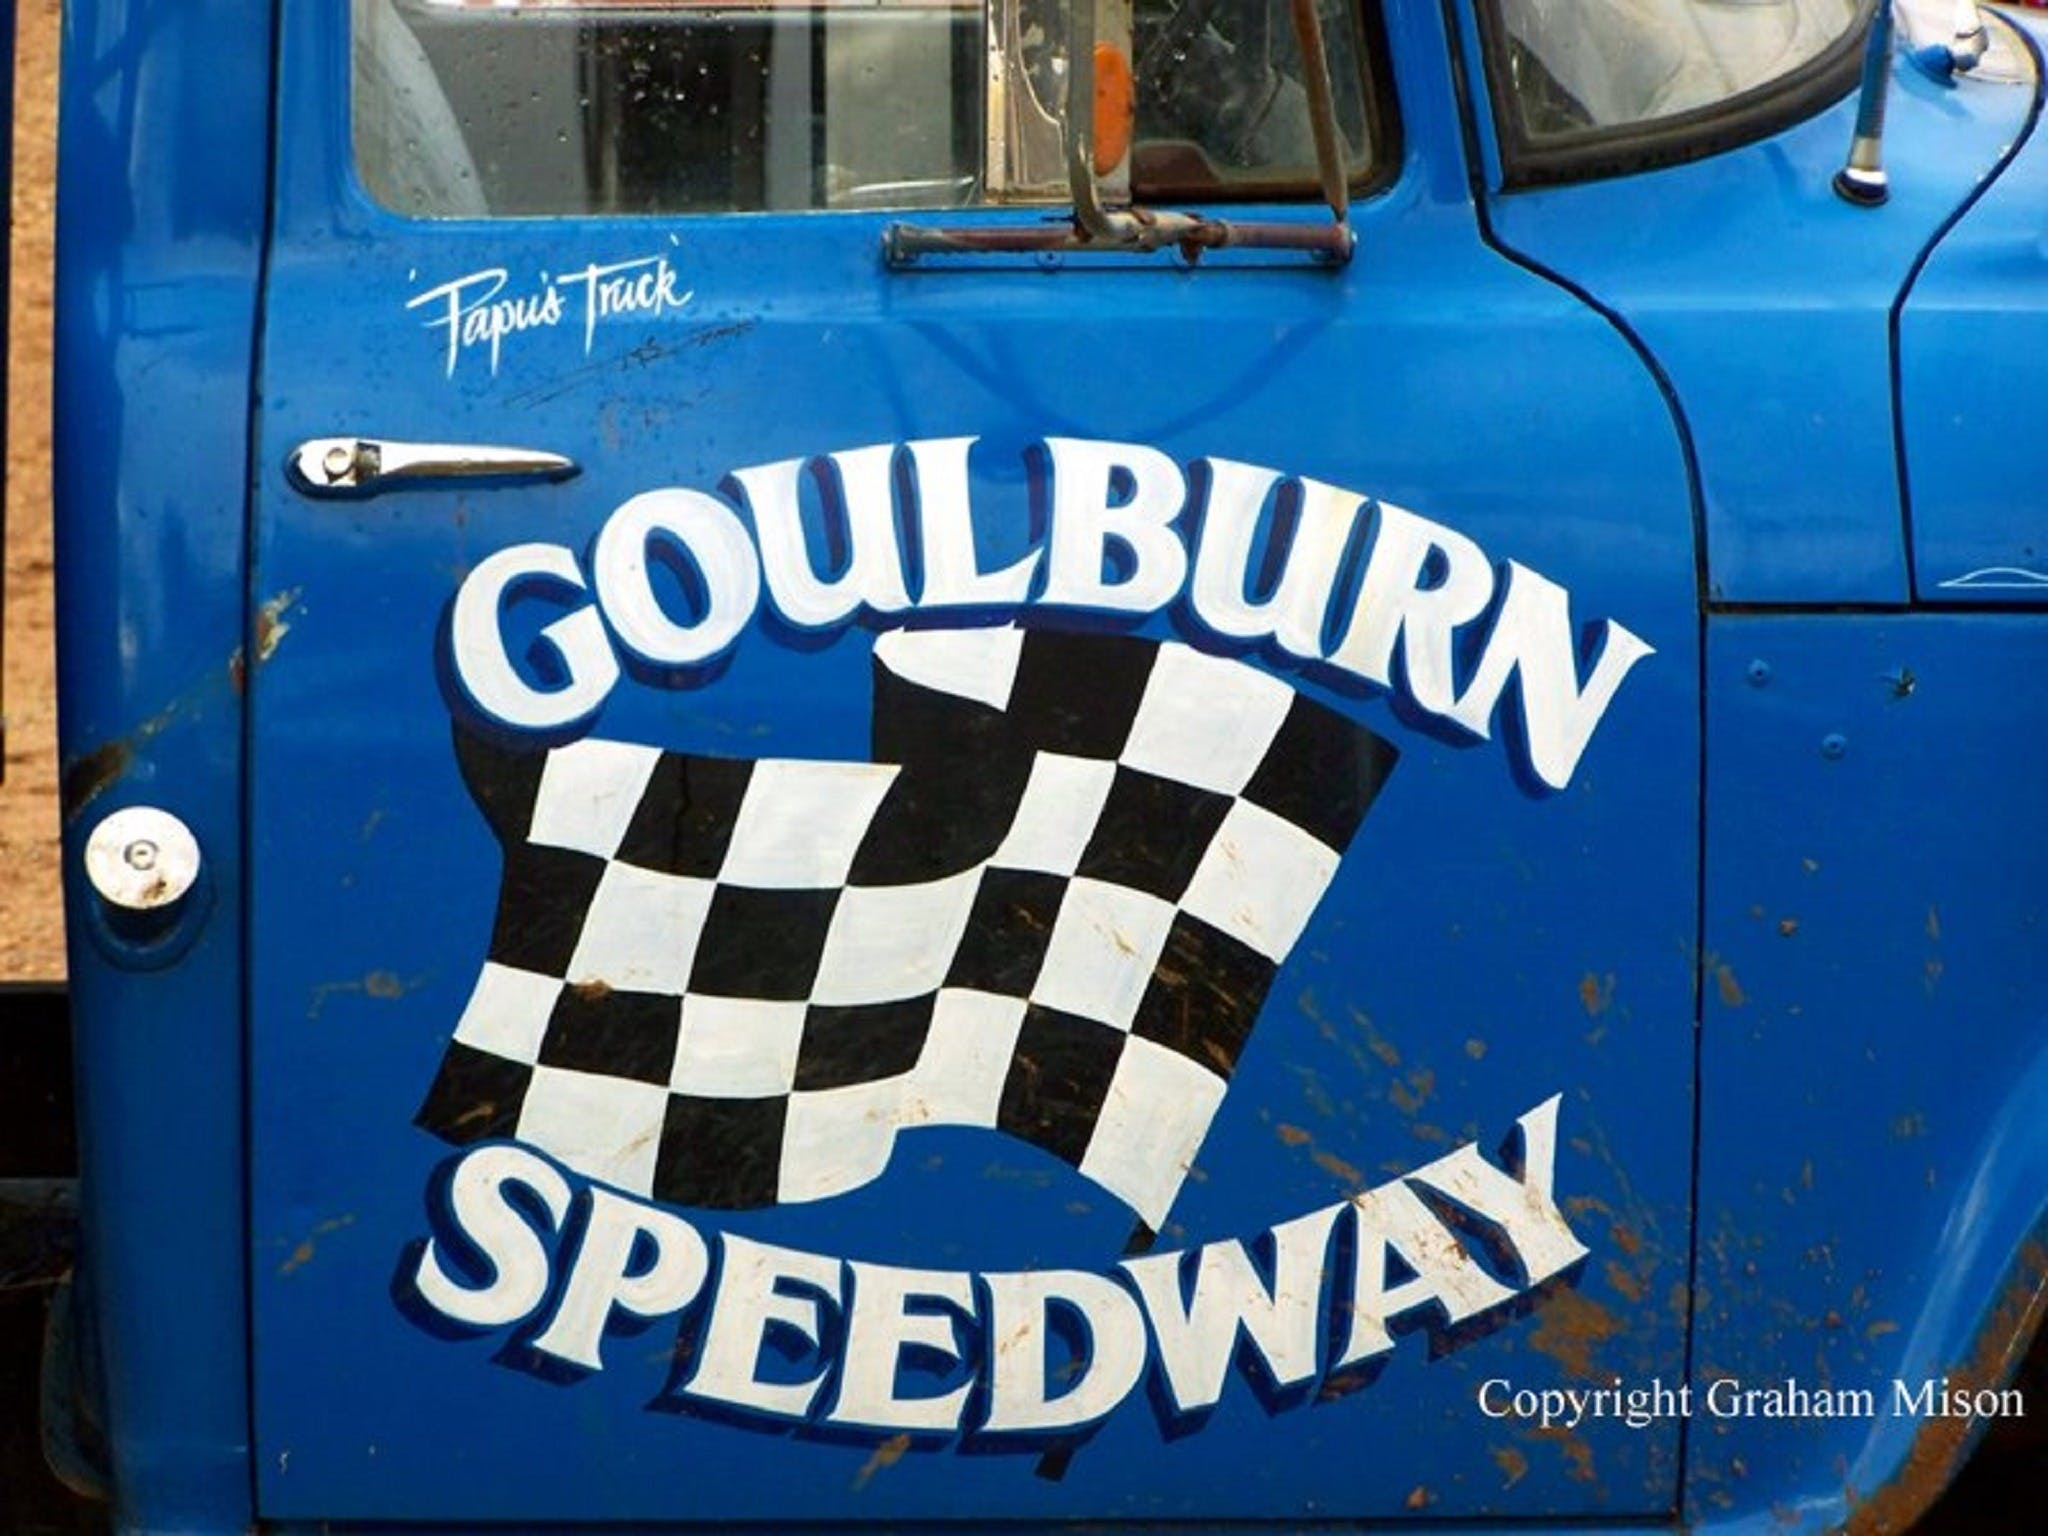 50 years of racing at Goulburn Speedway - Palm Beach Accommodation